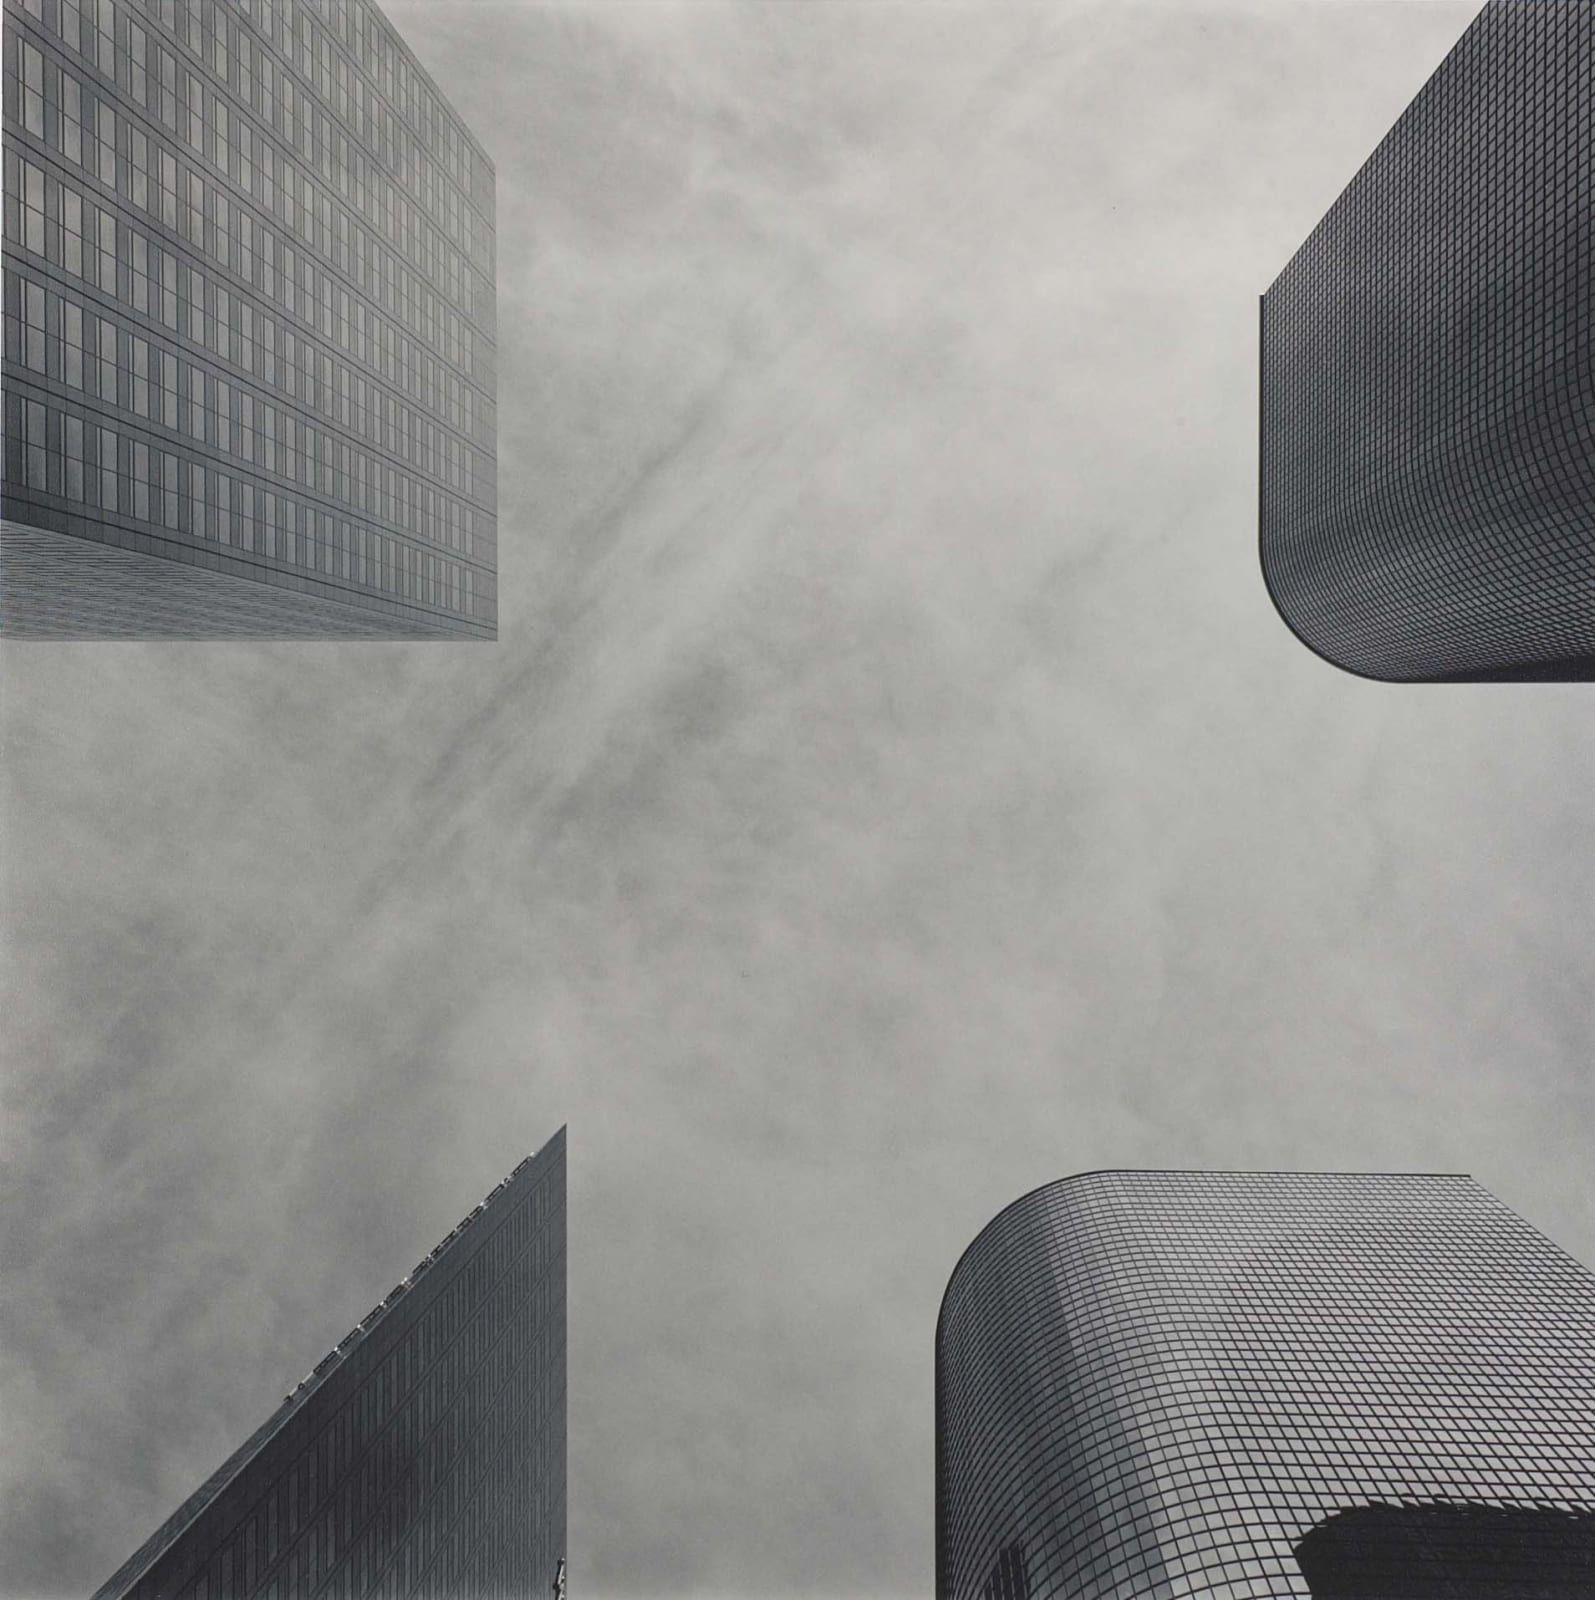 Lynn Davis, Downtown Los Angeles, CA, 1997